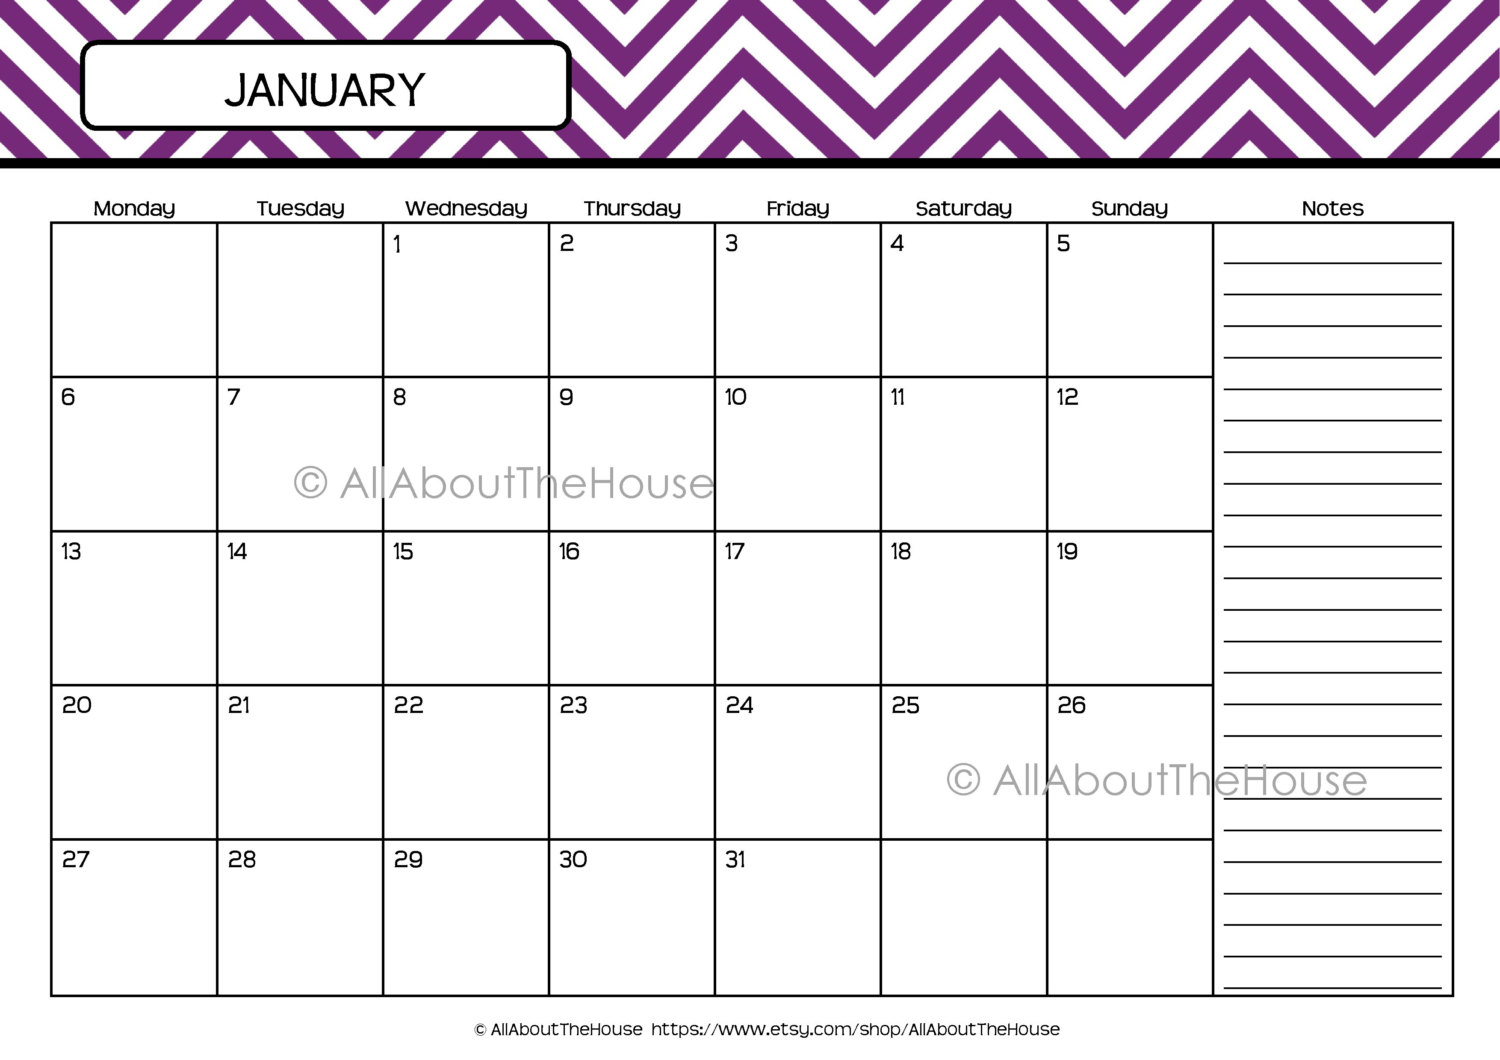 January 2016 Monthly Calendar Printable